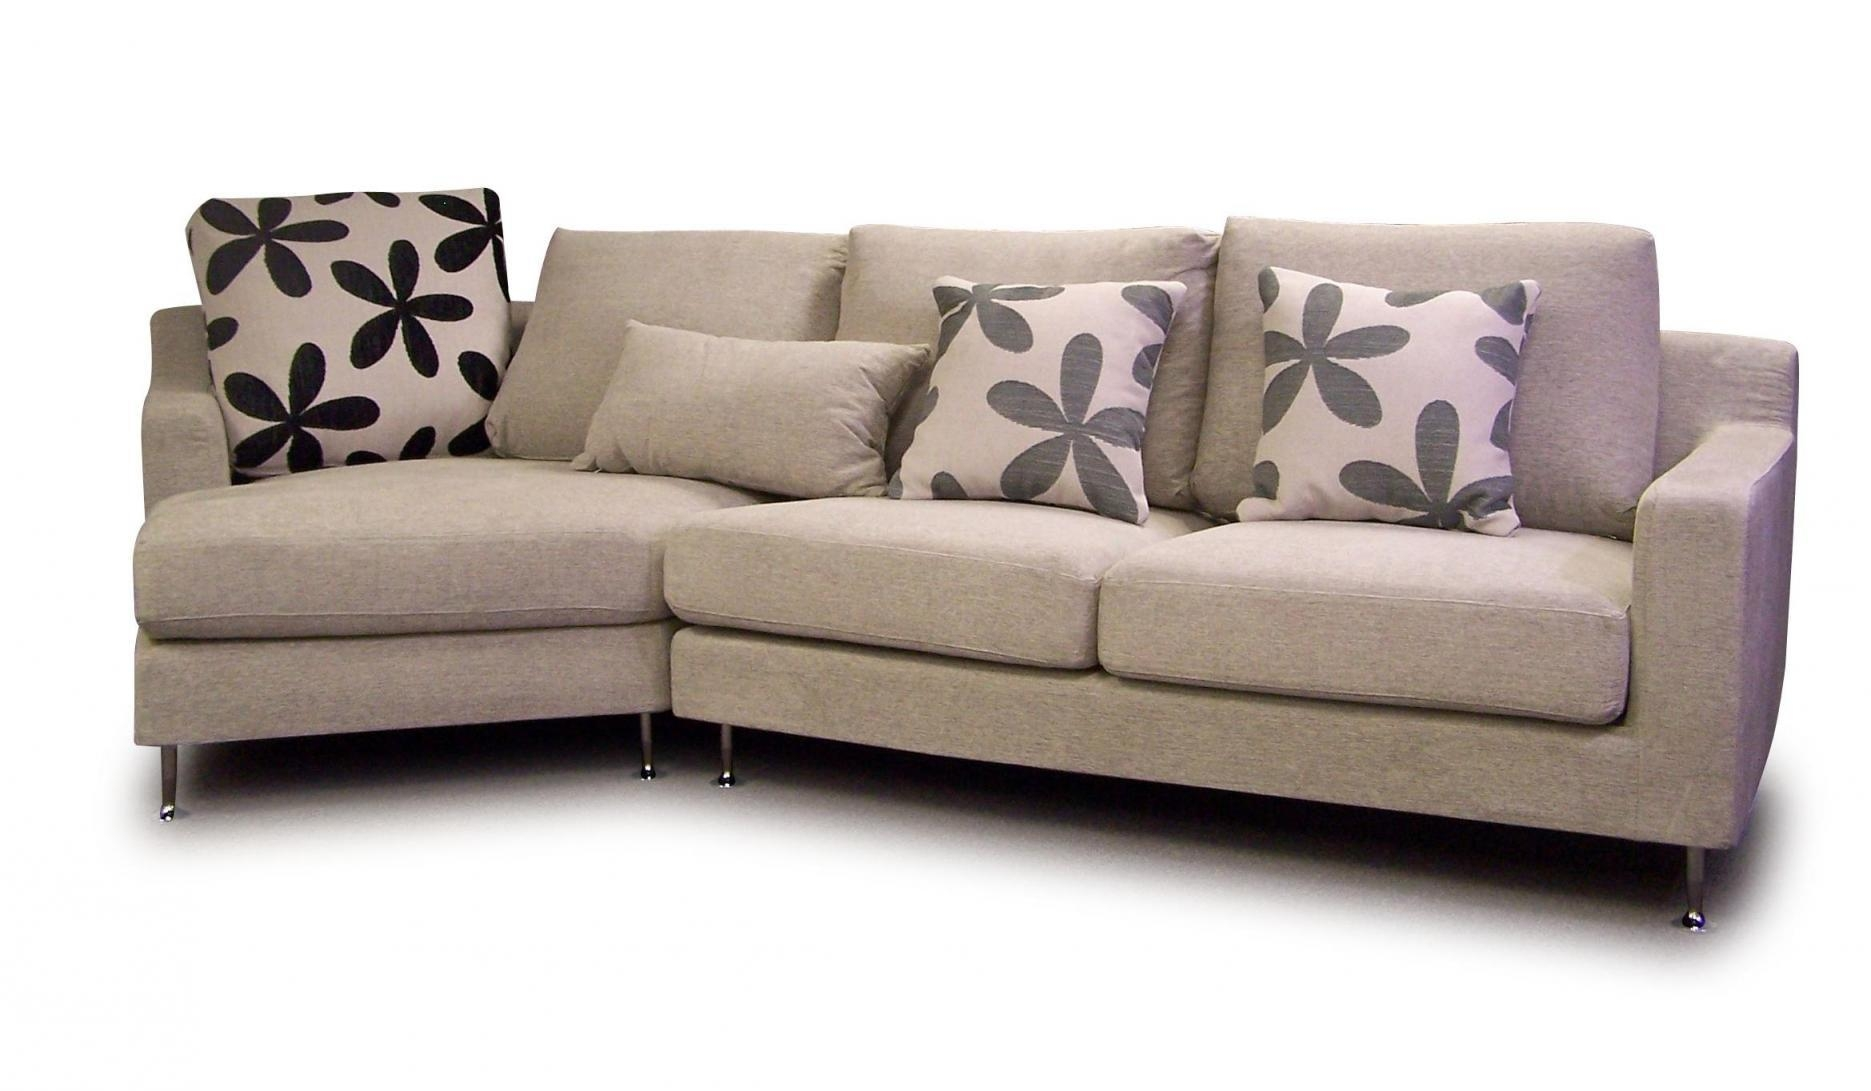 Sofa : Awesome Sofas For Cheap Sale Excellent Home Design Cool In regarding Cool Cheap Sofas